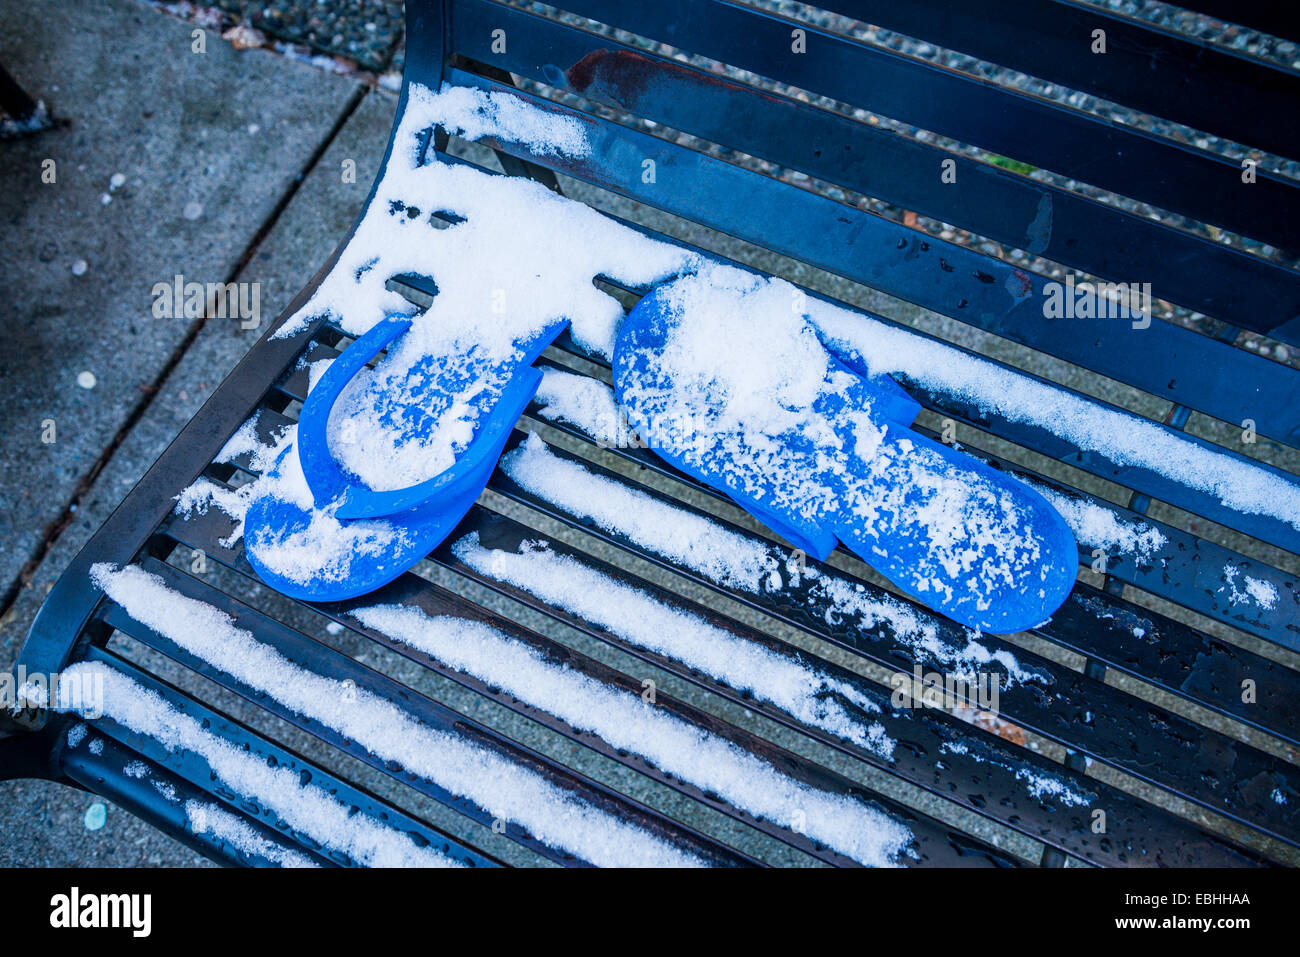 Flip flop sandals left behind on bench with snow. Stock Photo